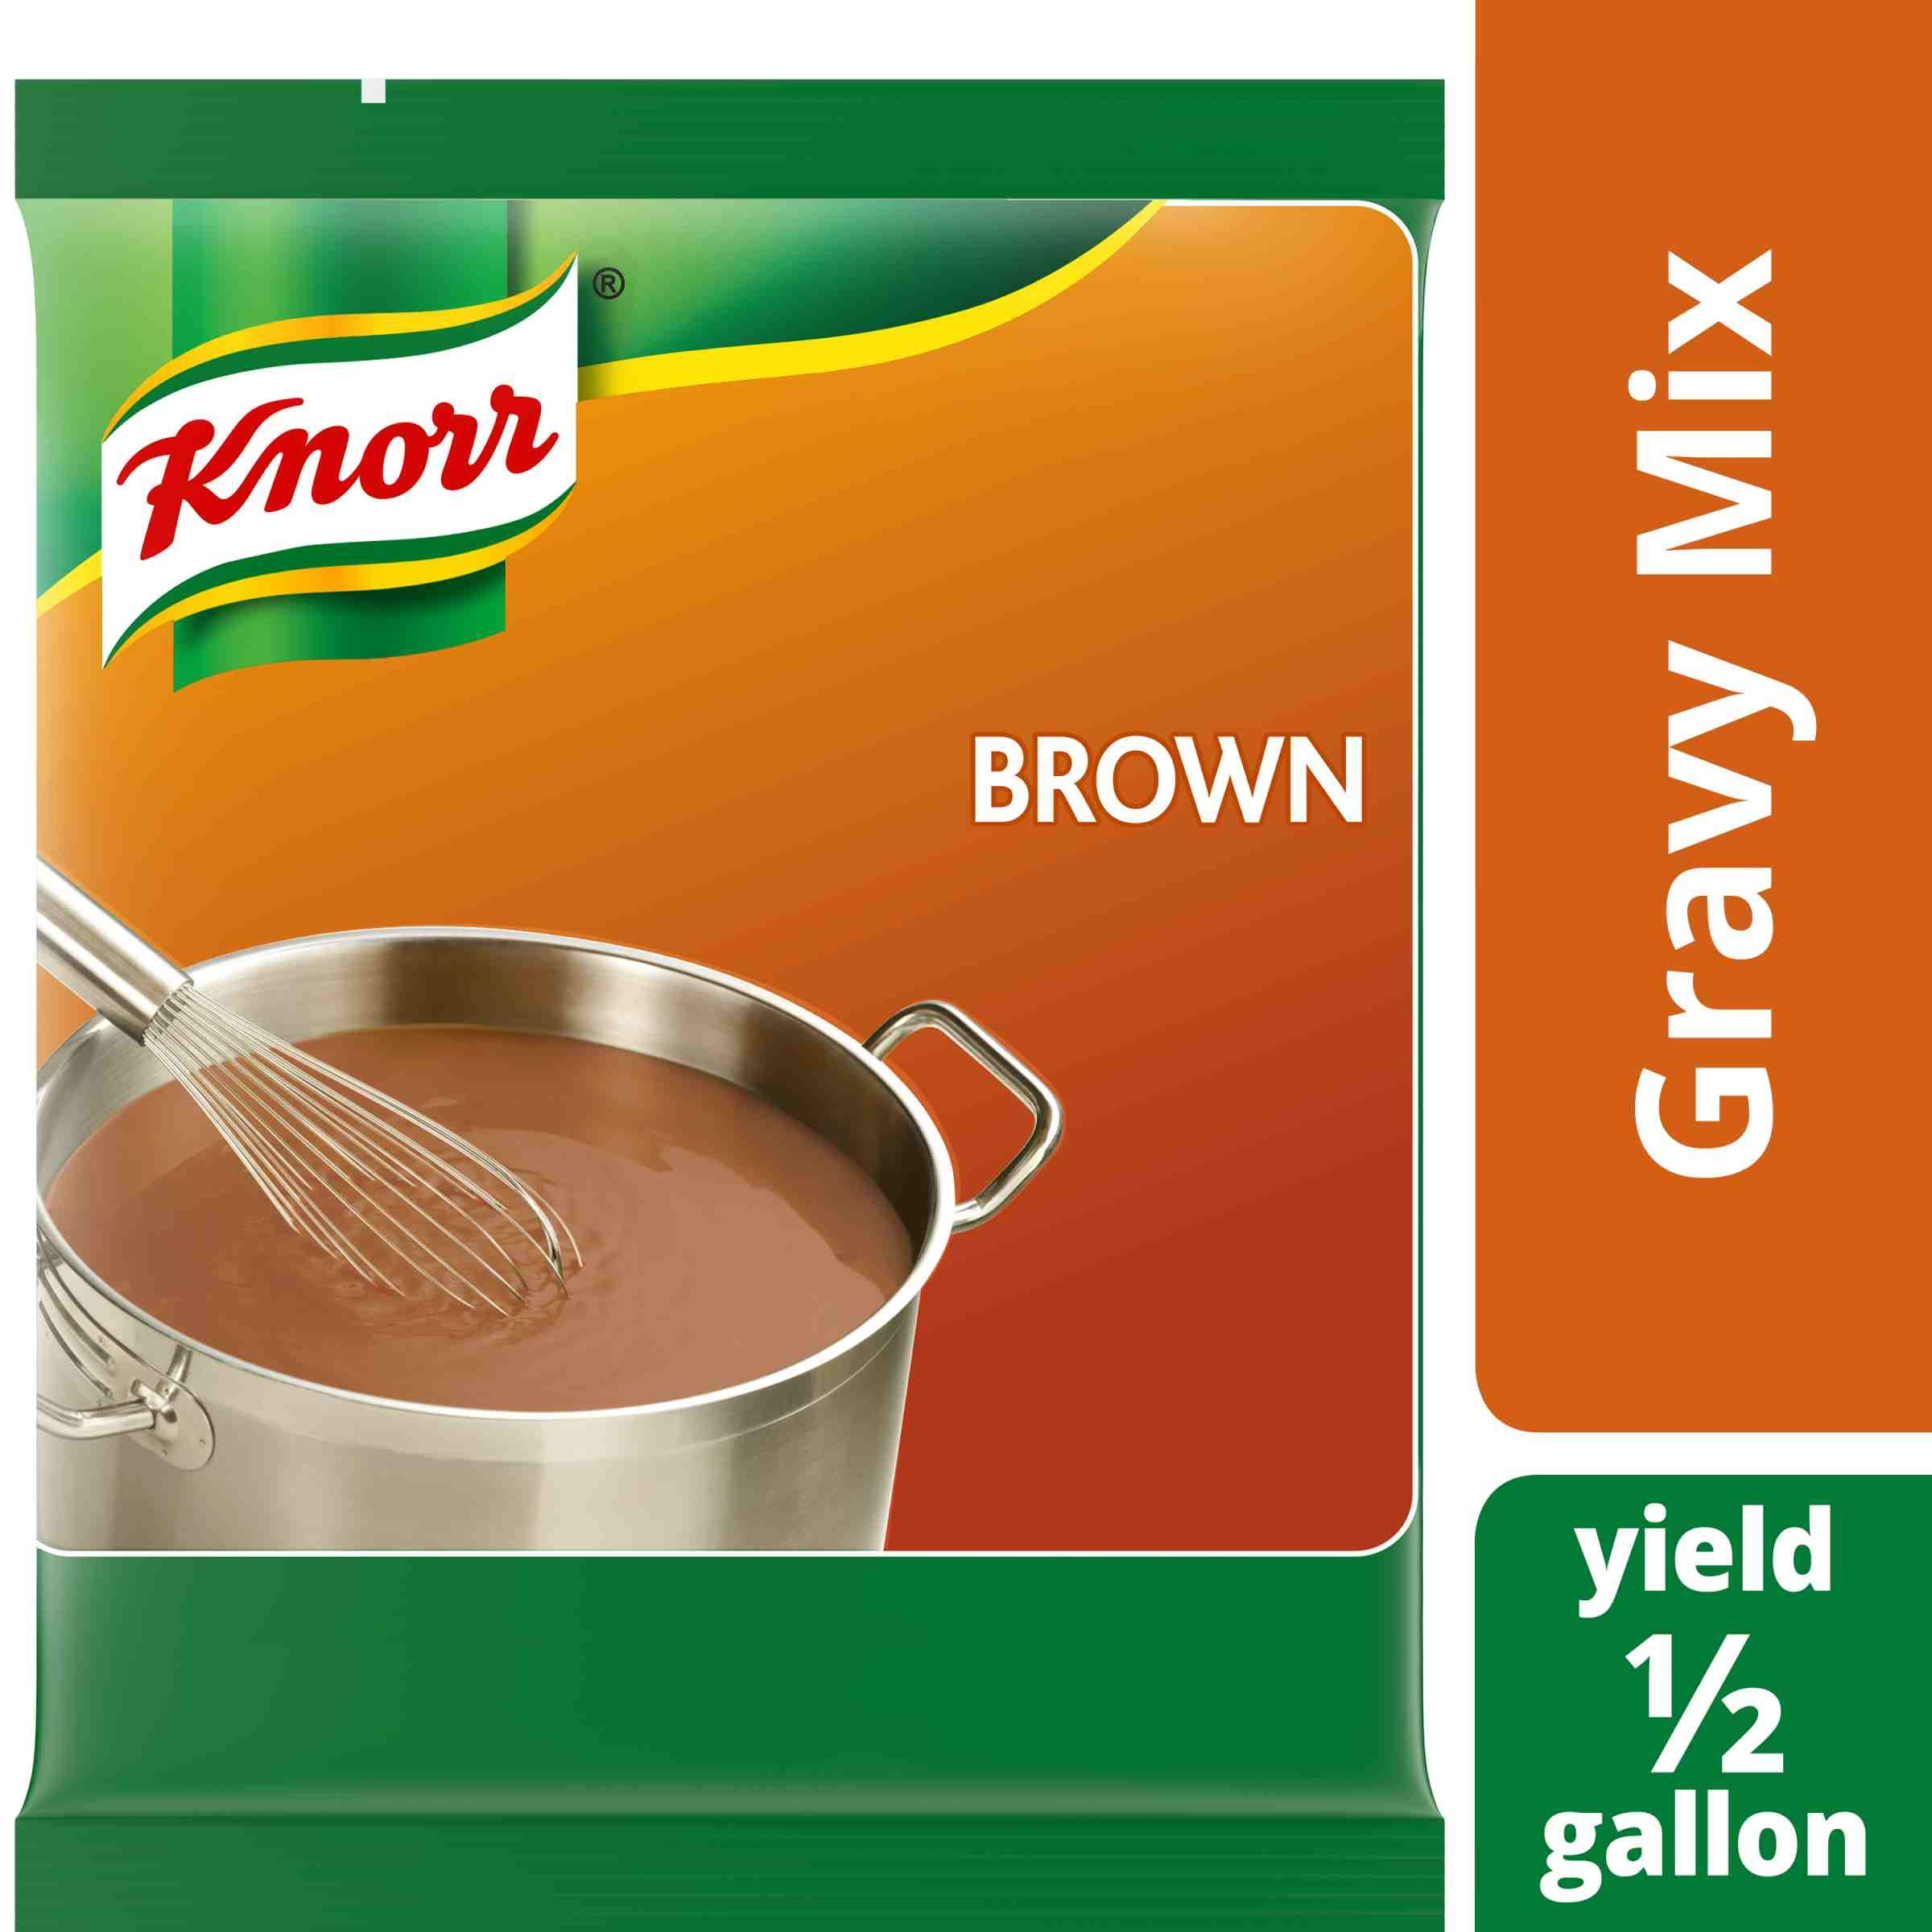 Knorr Professional Brown Gravy Mix Vegan, Gluten Free, No Artificial Flavors or Preservatives, No added MSG, Dairy Free,Colors from Natural Sources, 6.83 oz, Pack of 6 by Knorr